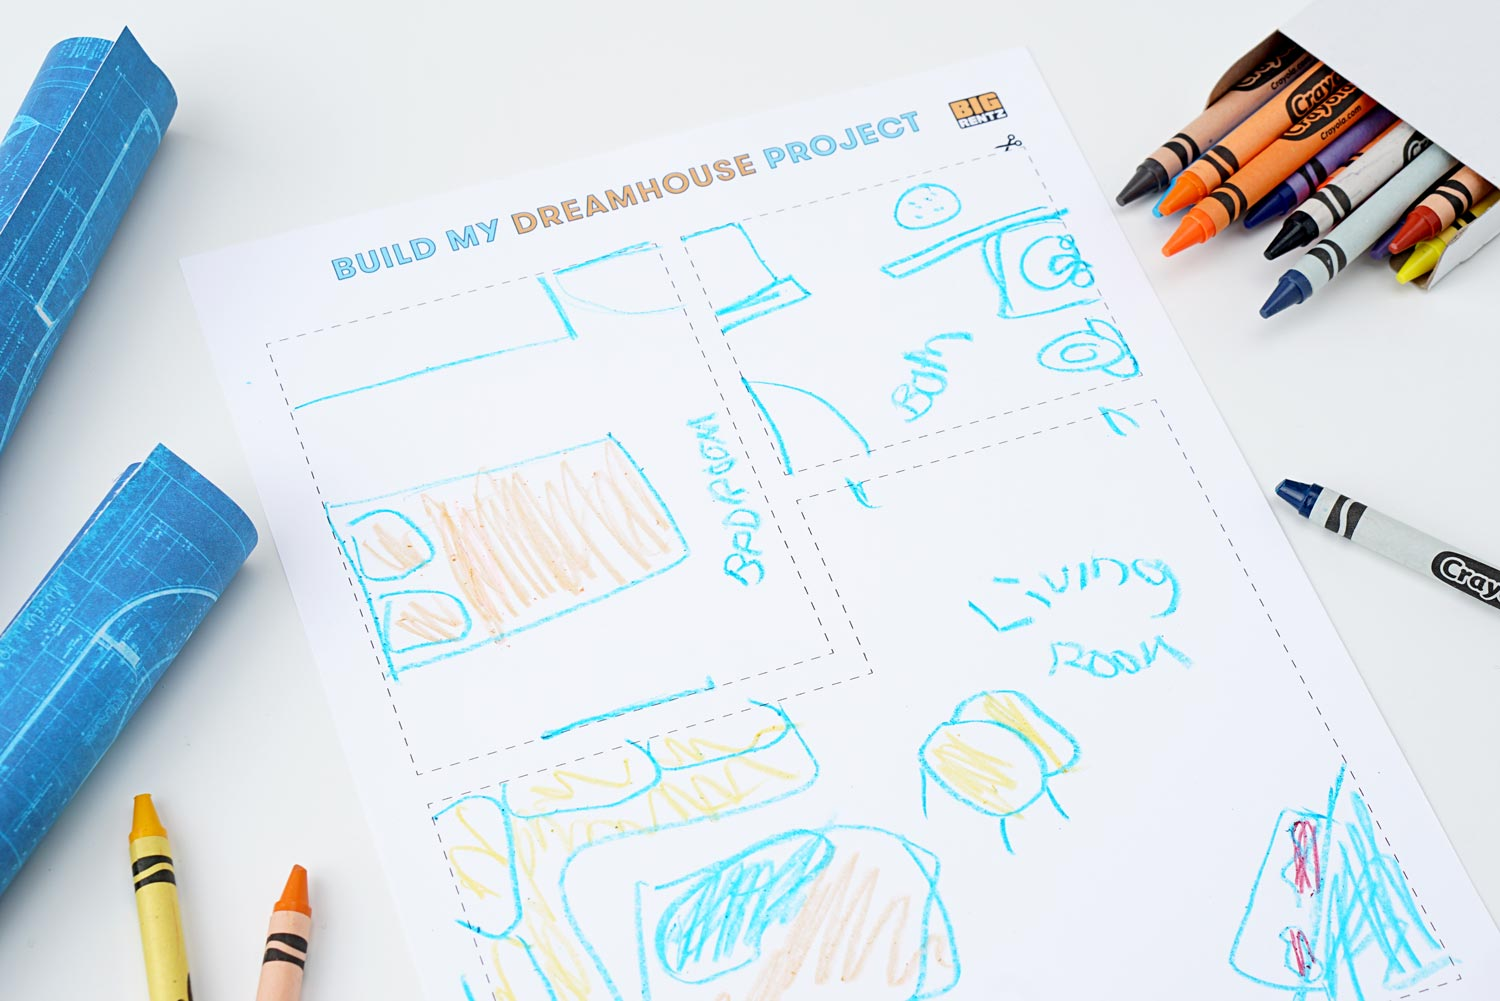 Build My Dream House Project